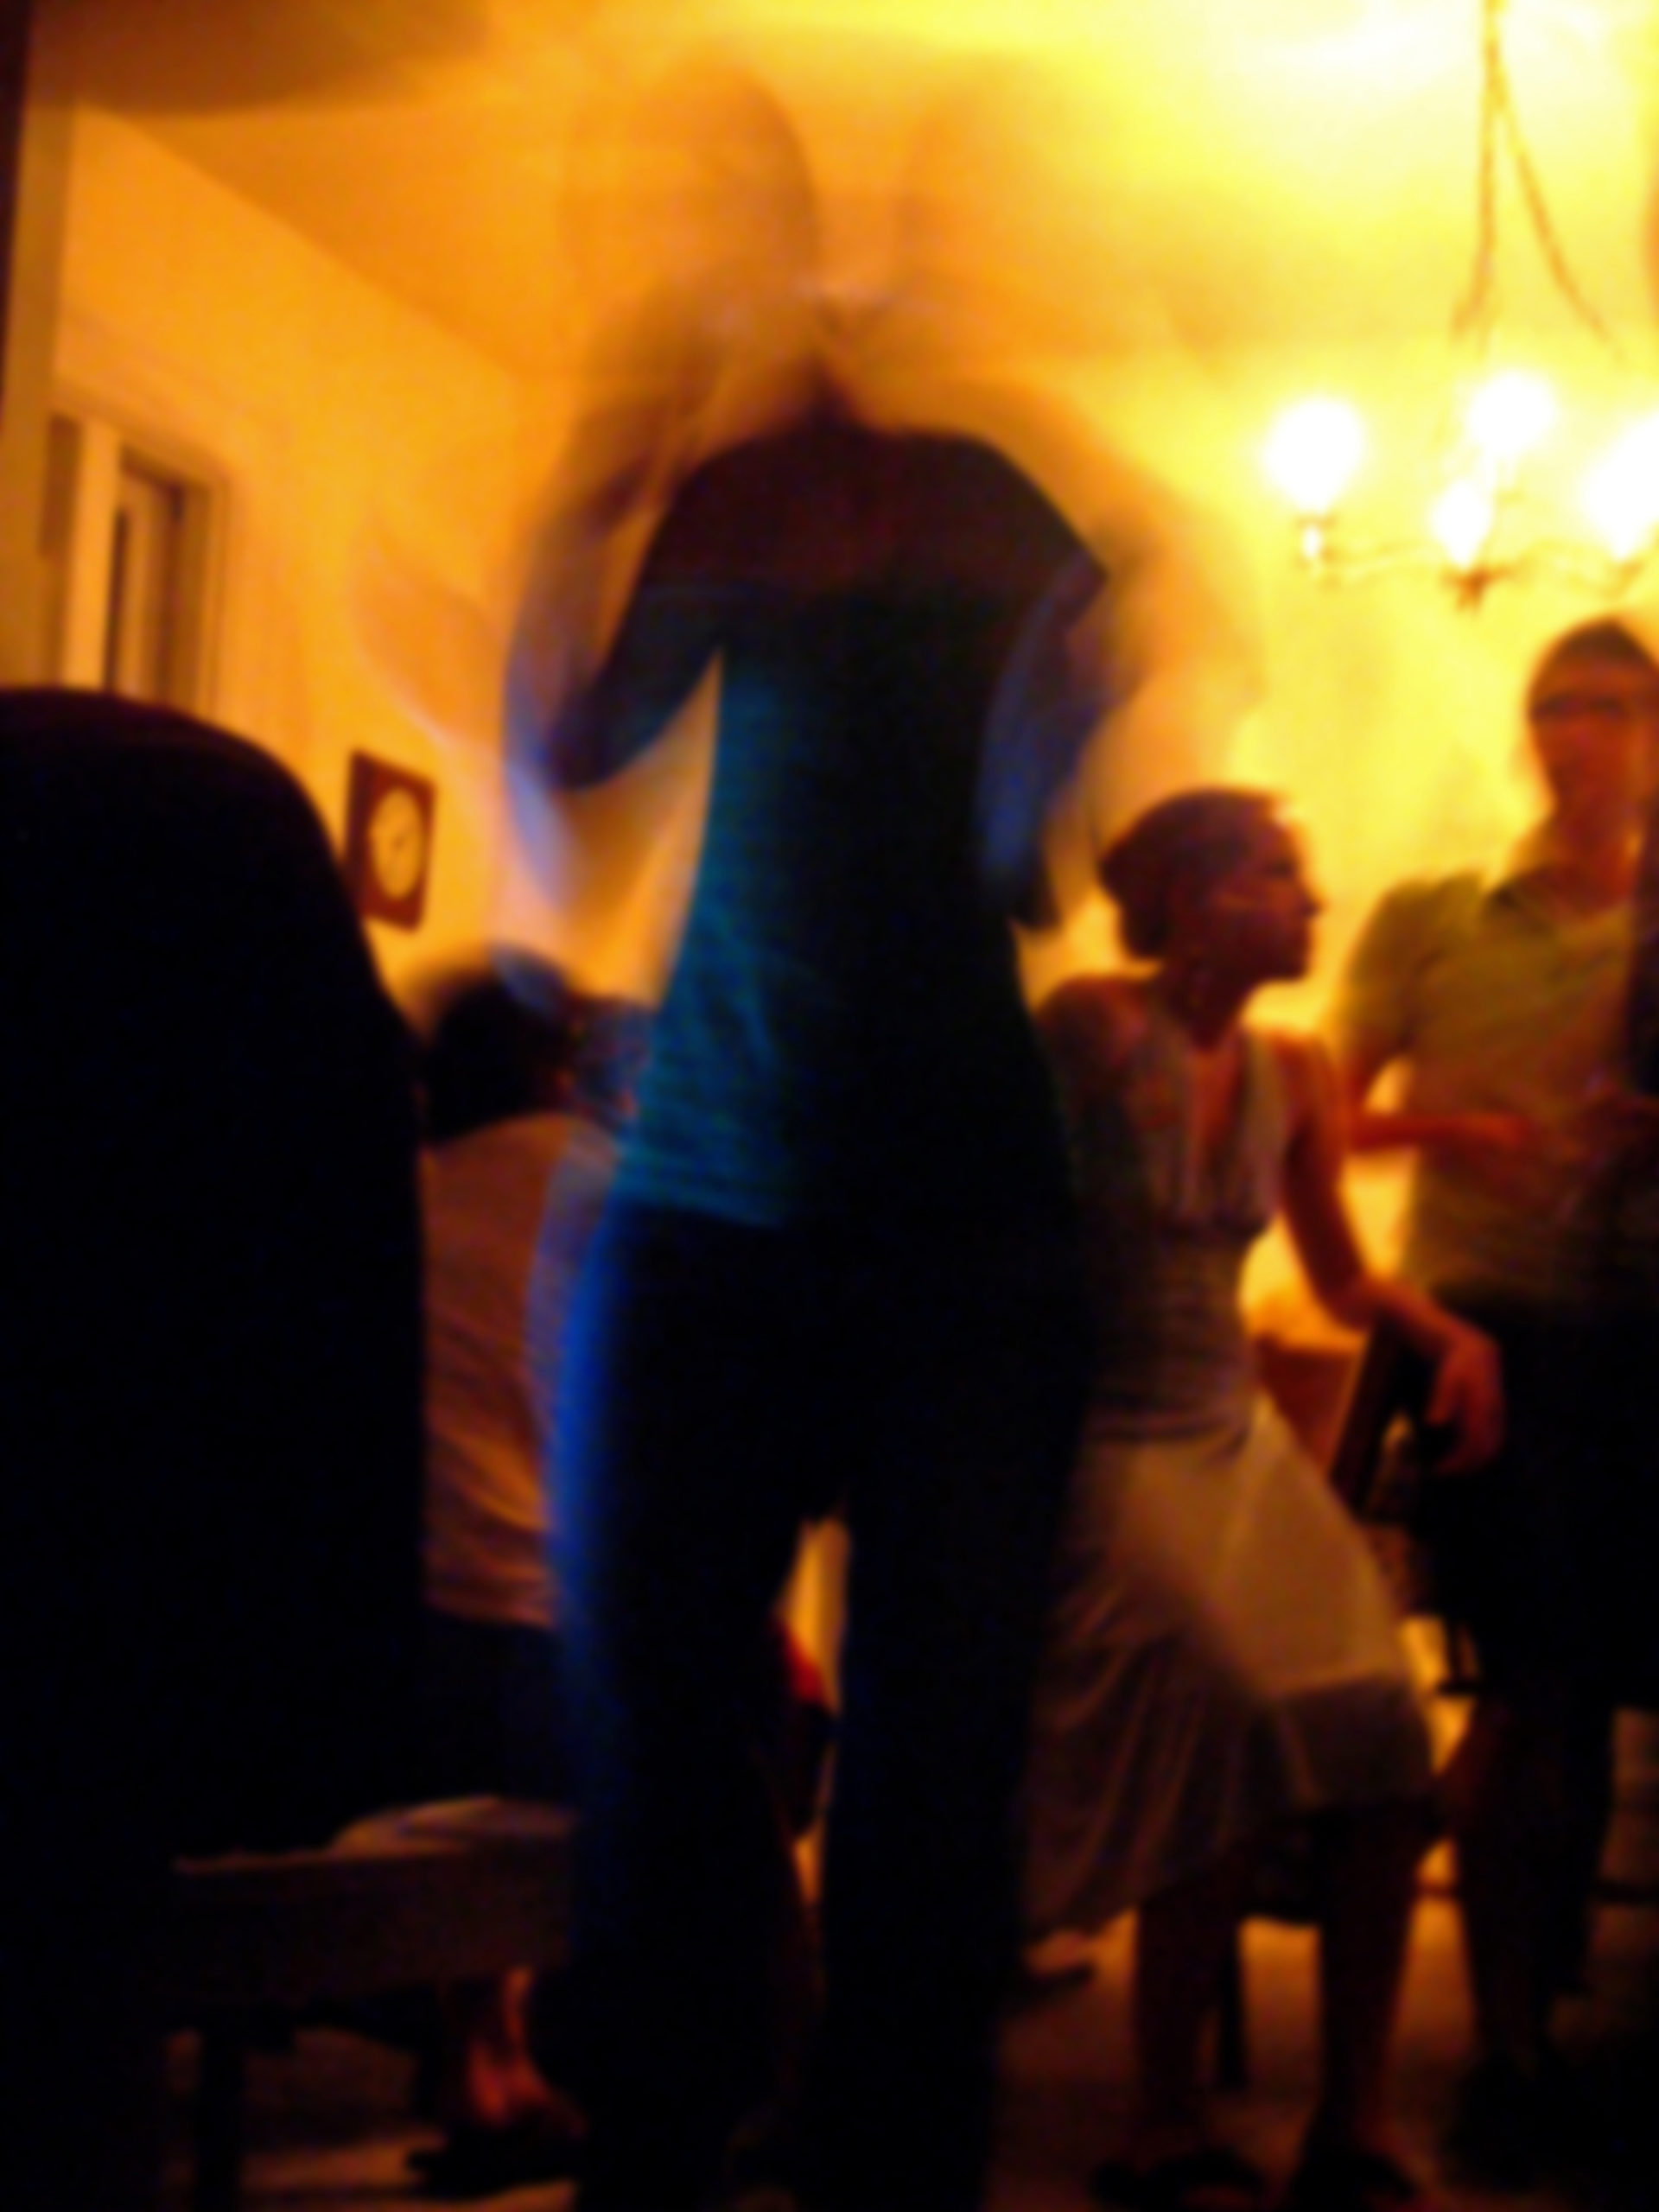 Columbia Heights house party, Washington D.C., August 2006